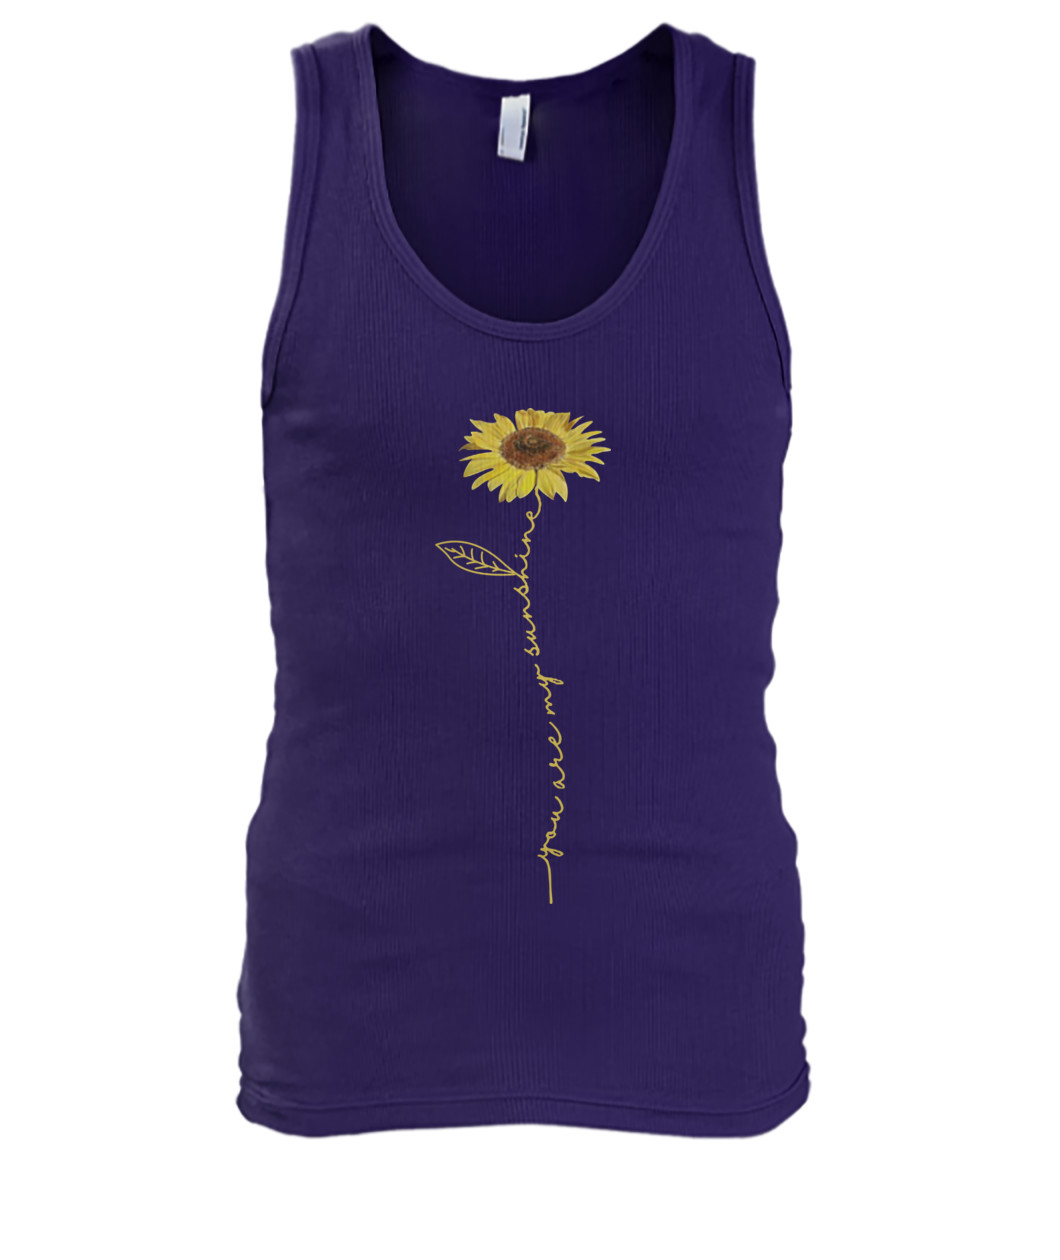 You are My Sunshine flower tank top